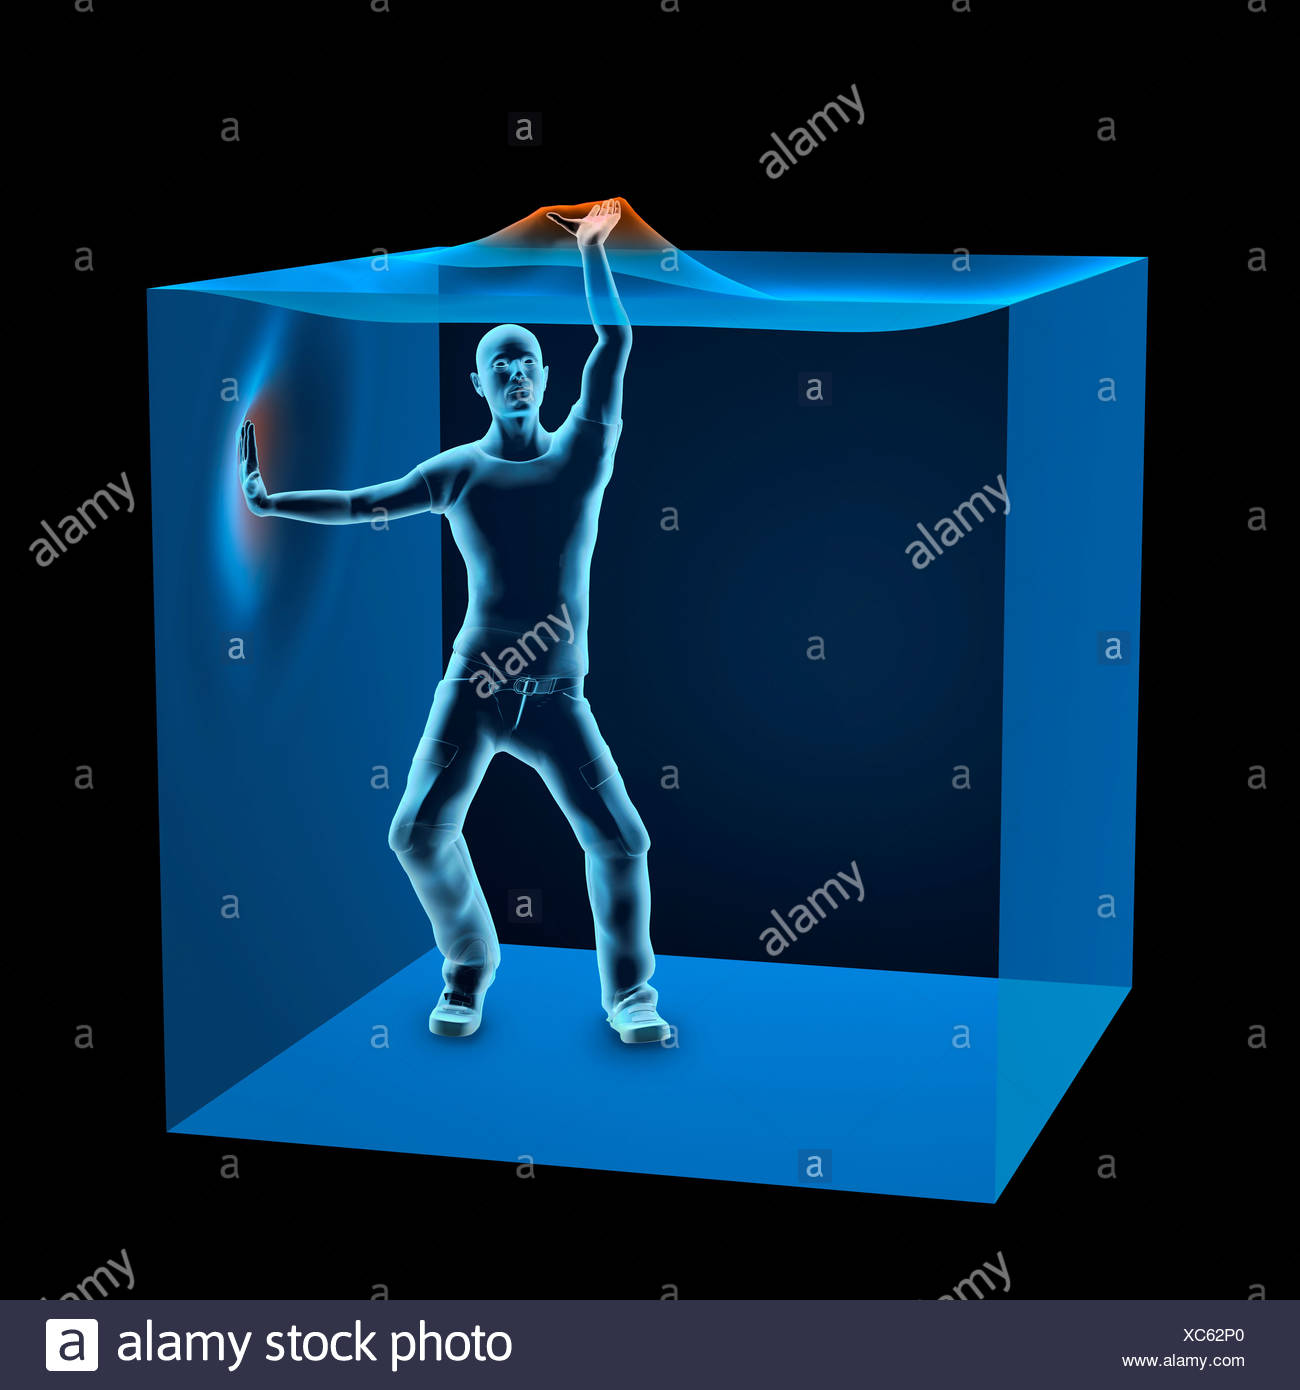 3D Computer Illustration of man trapped inside blue transparent cube - Stock Image